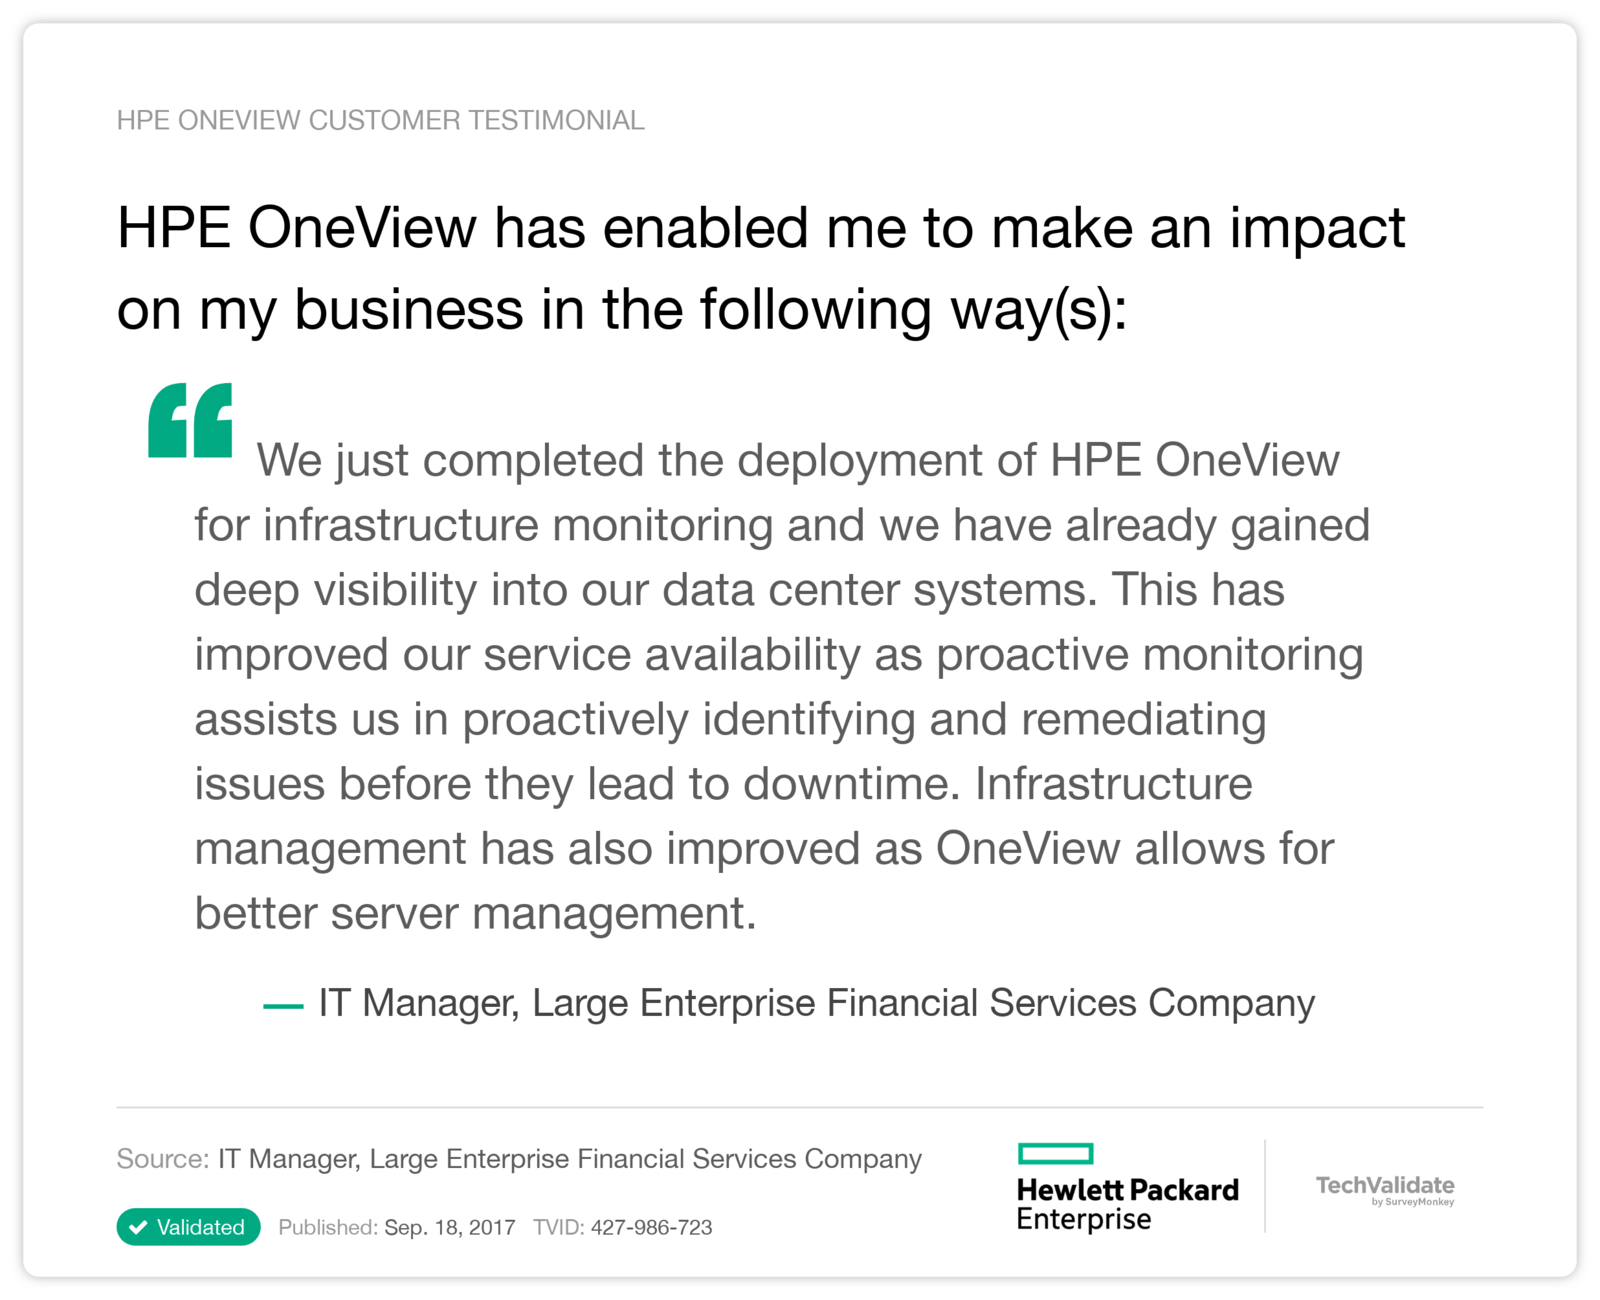 HPE OneView has enabled me to make an impact on my business in the following way(s):